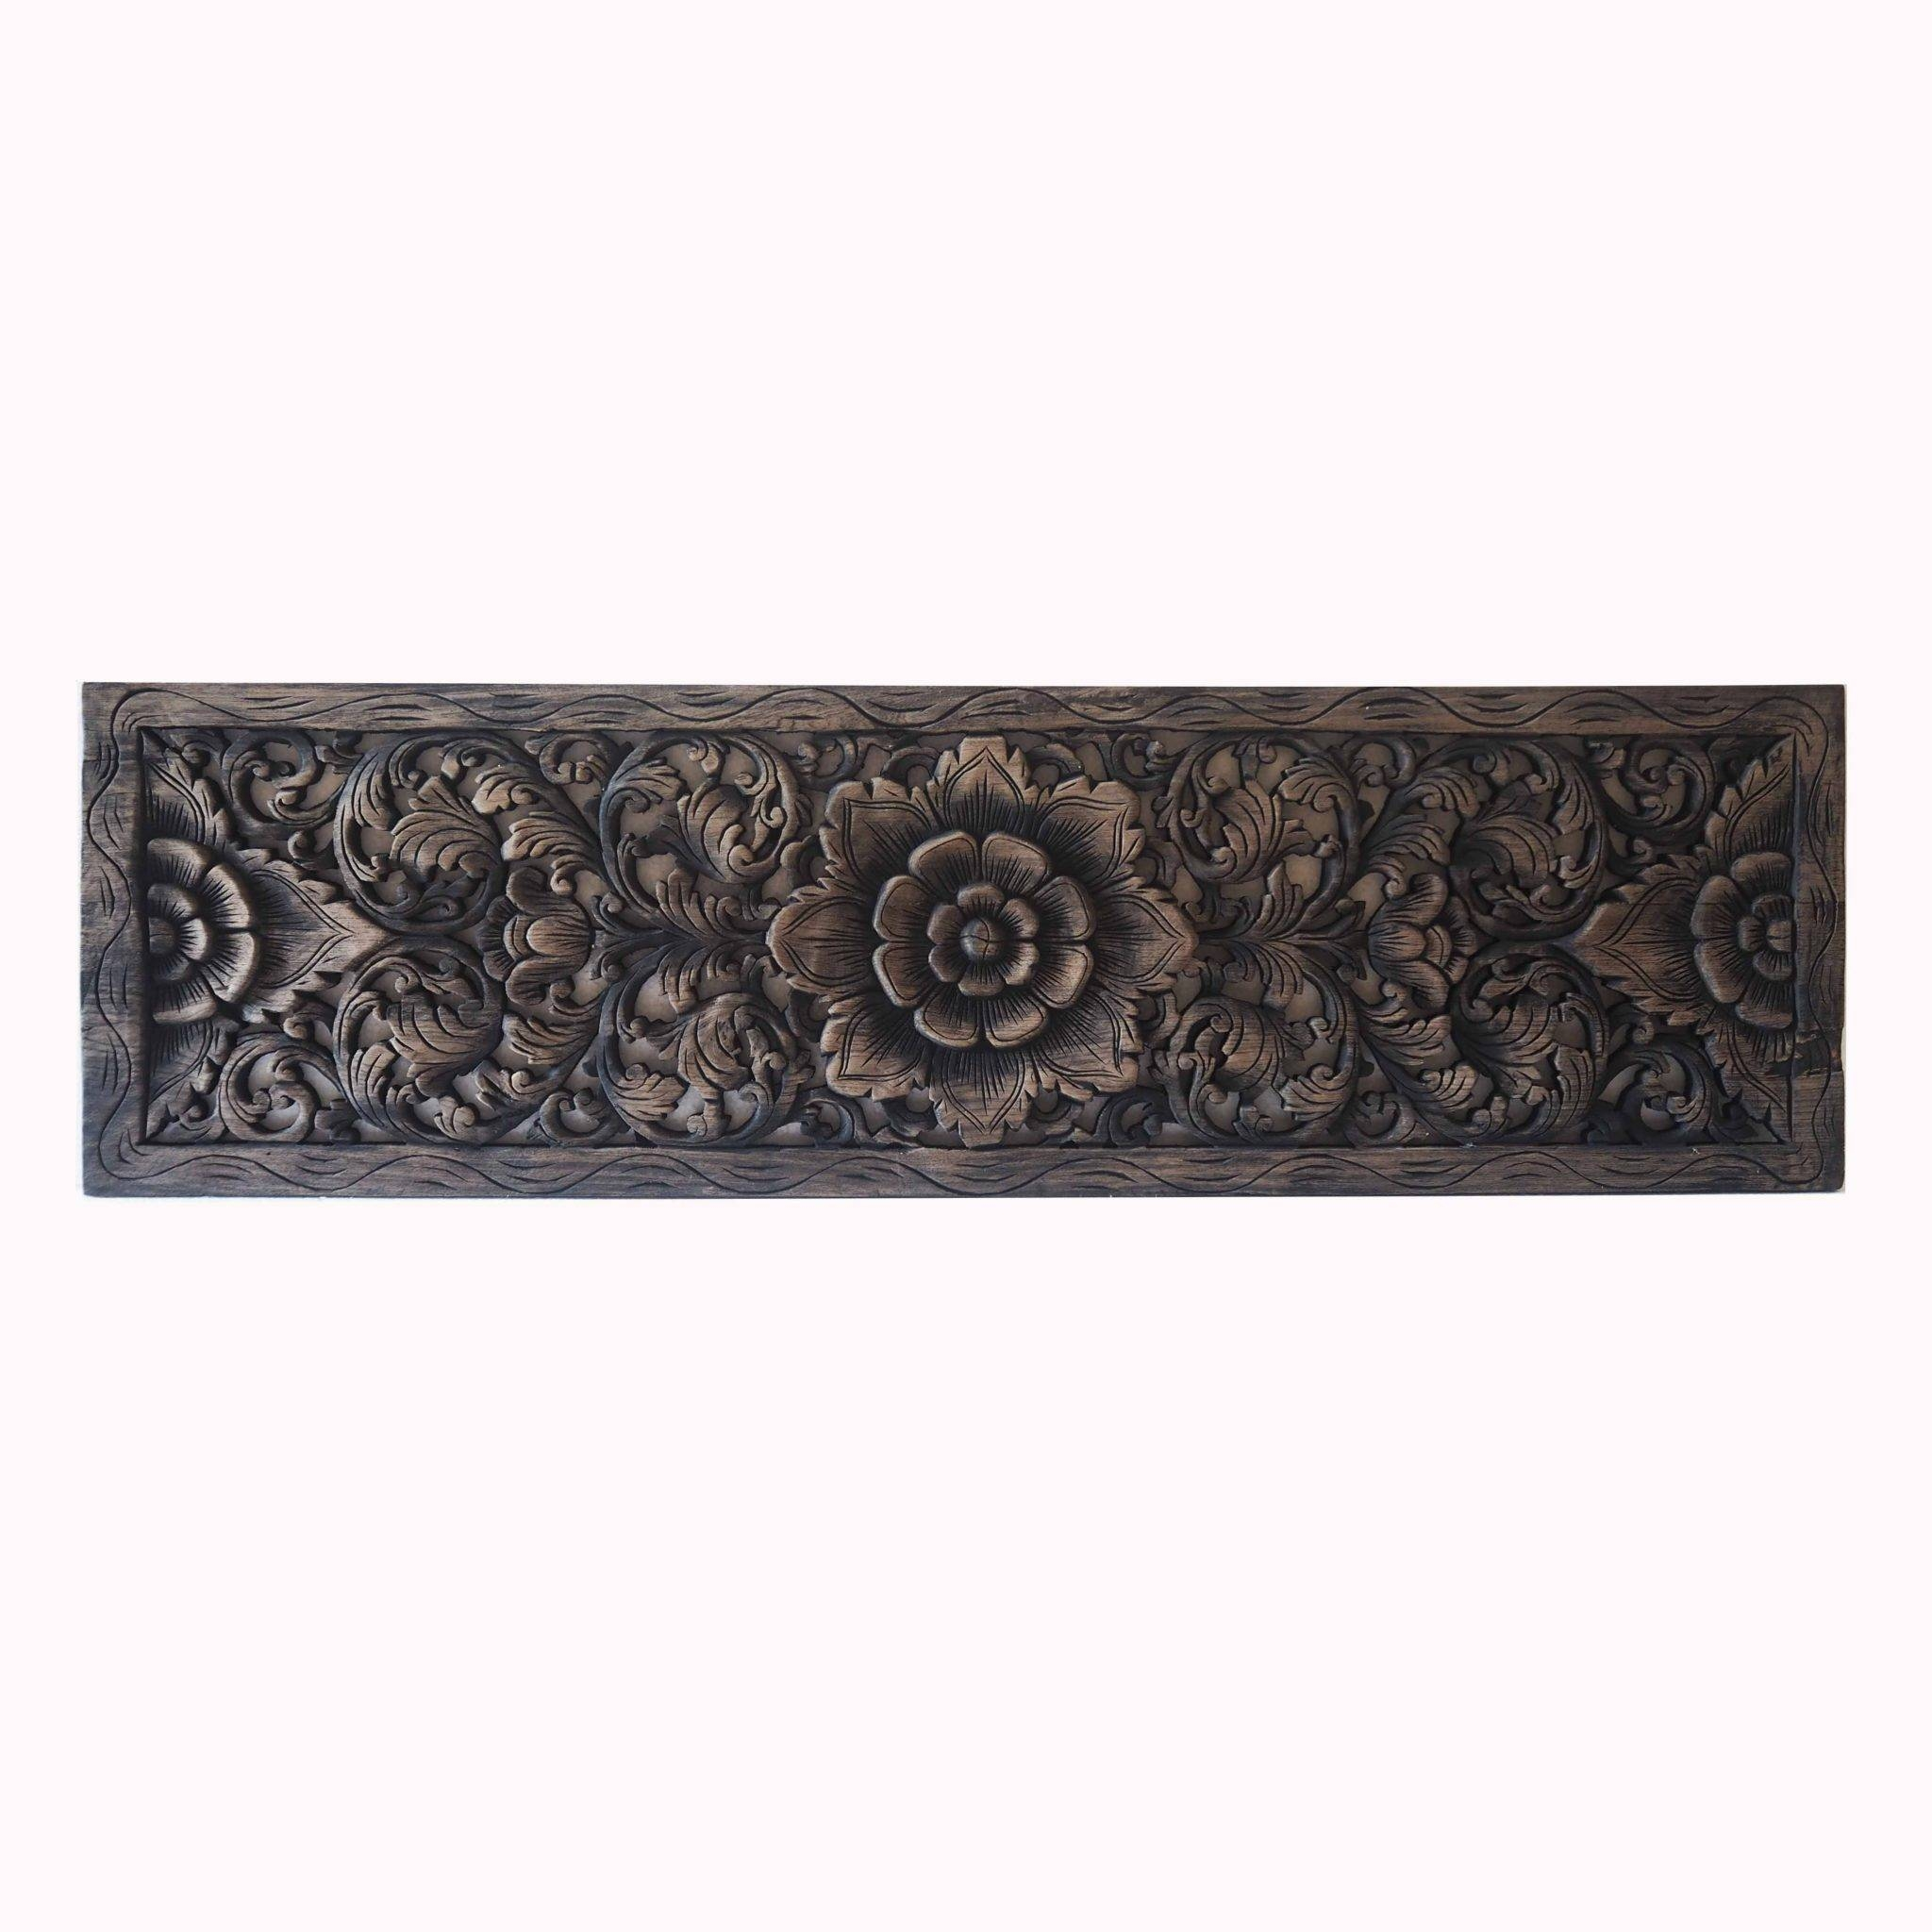 Thai Lotus Wood Carving Wall Art Panel – Siam Sawadee Throughout Recent Asian Wall Art Panels (View 13 of 20)